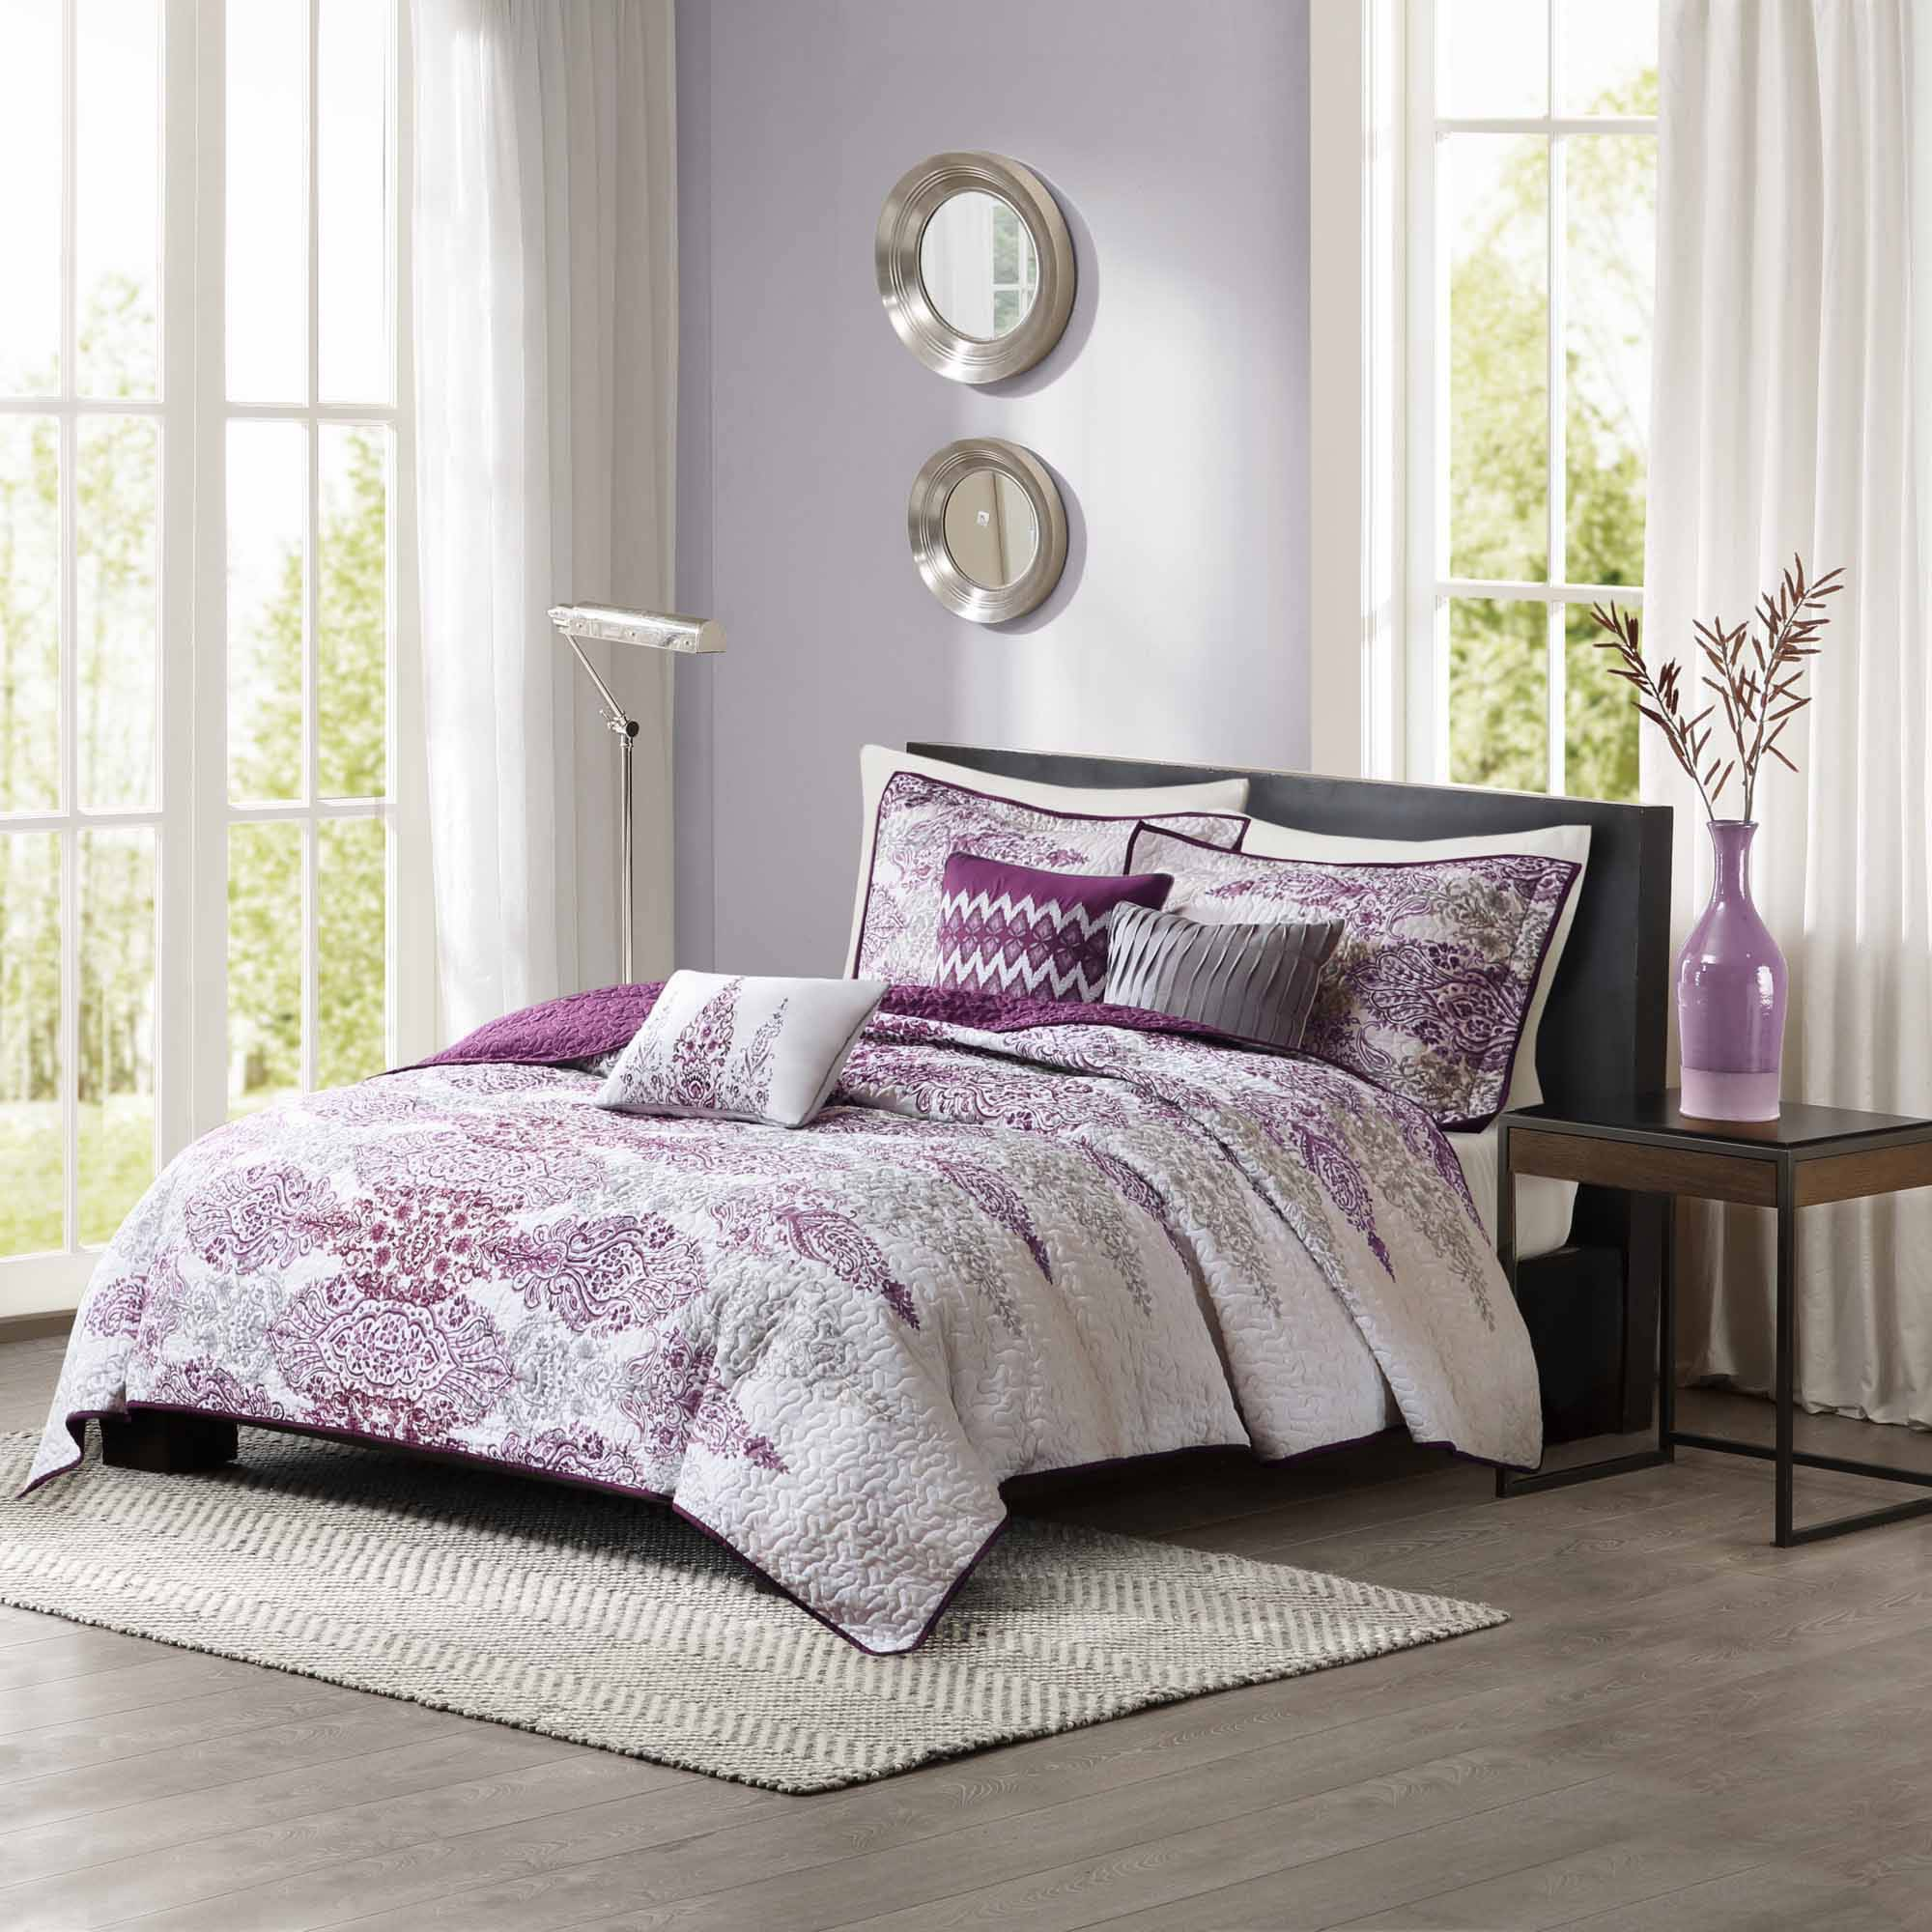 wayfair bedding size belk decoration bedspreads s sets wonderful bedroom beyond set california comforter bath quilt boscovs queen king cotton bed ideas bedspread for